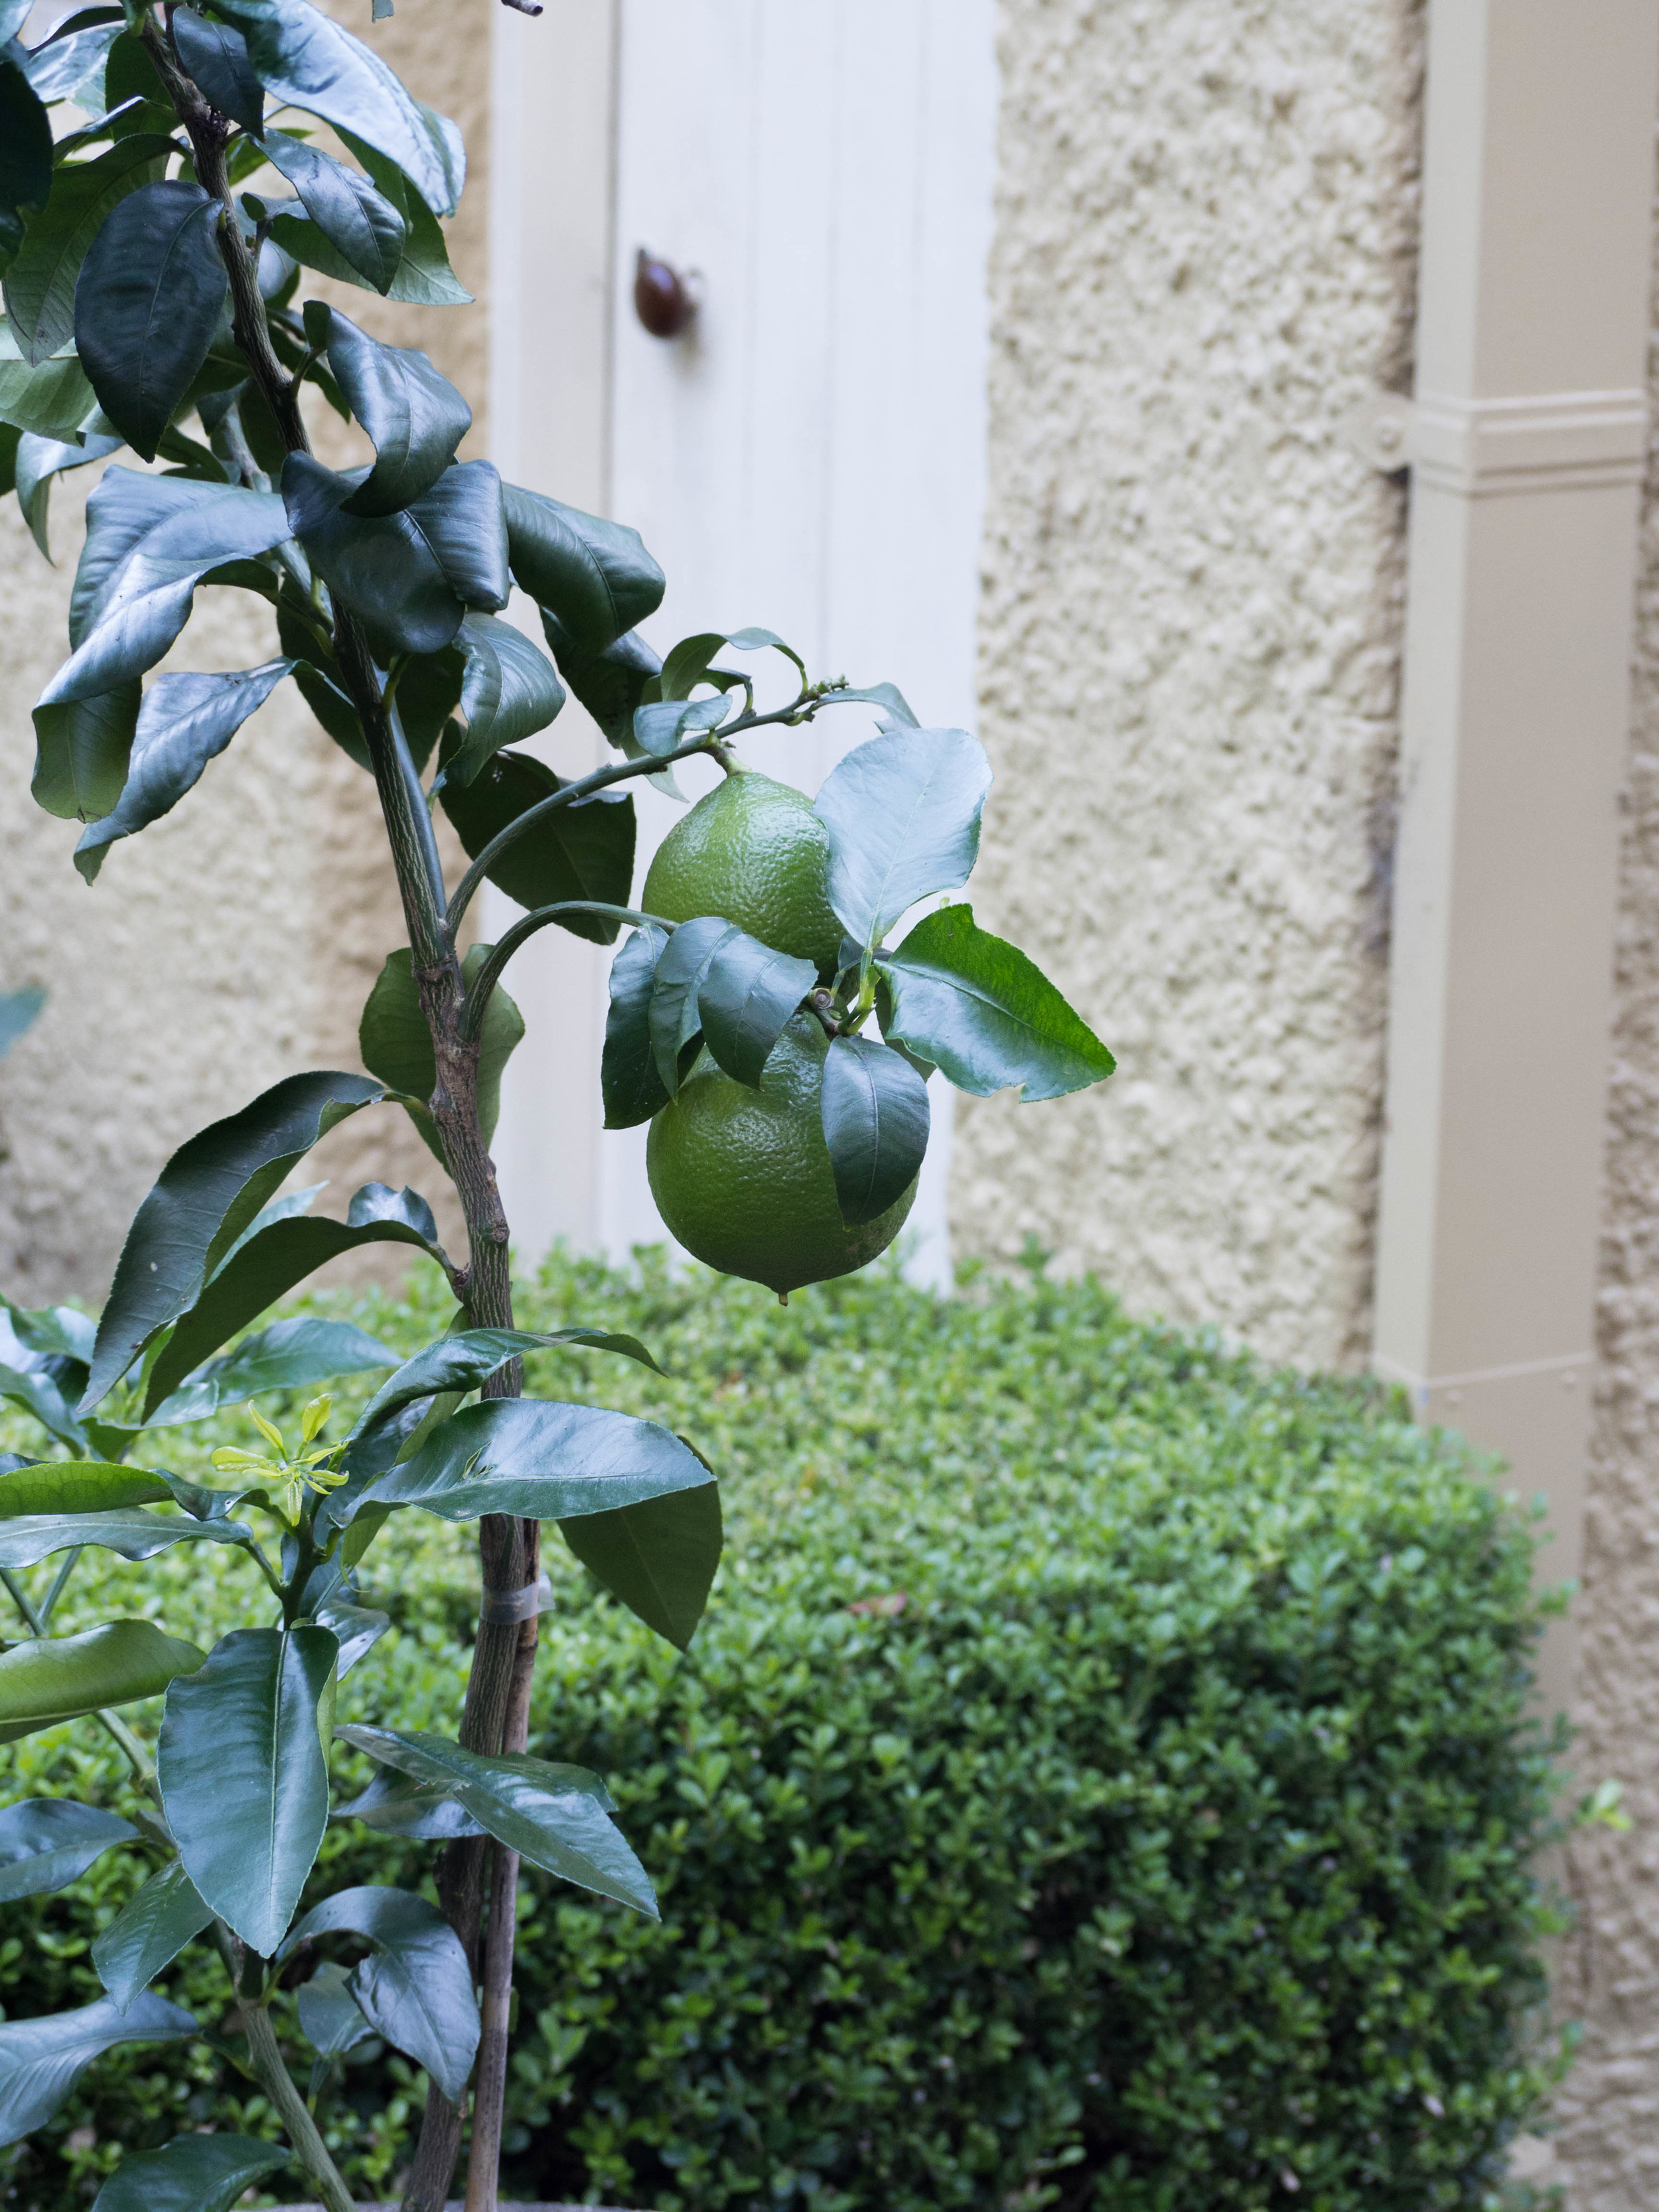 Bergamots growing on the tree before they have ripened